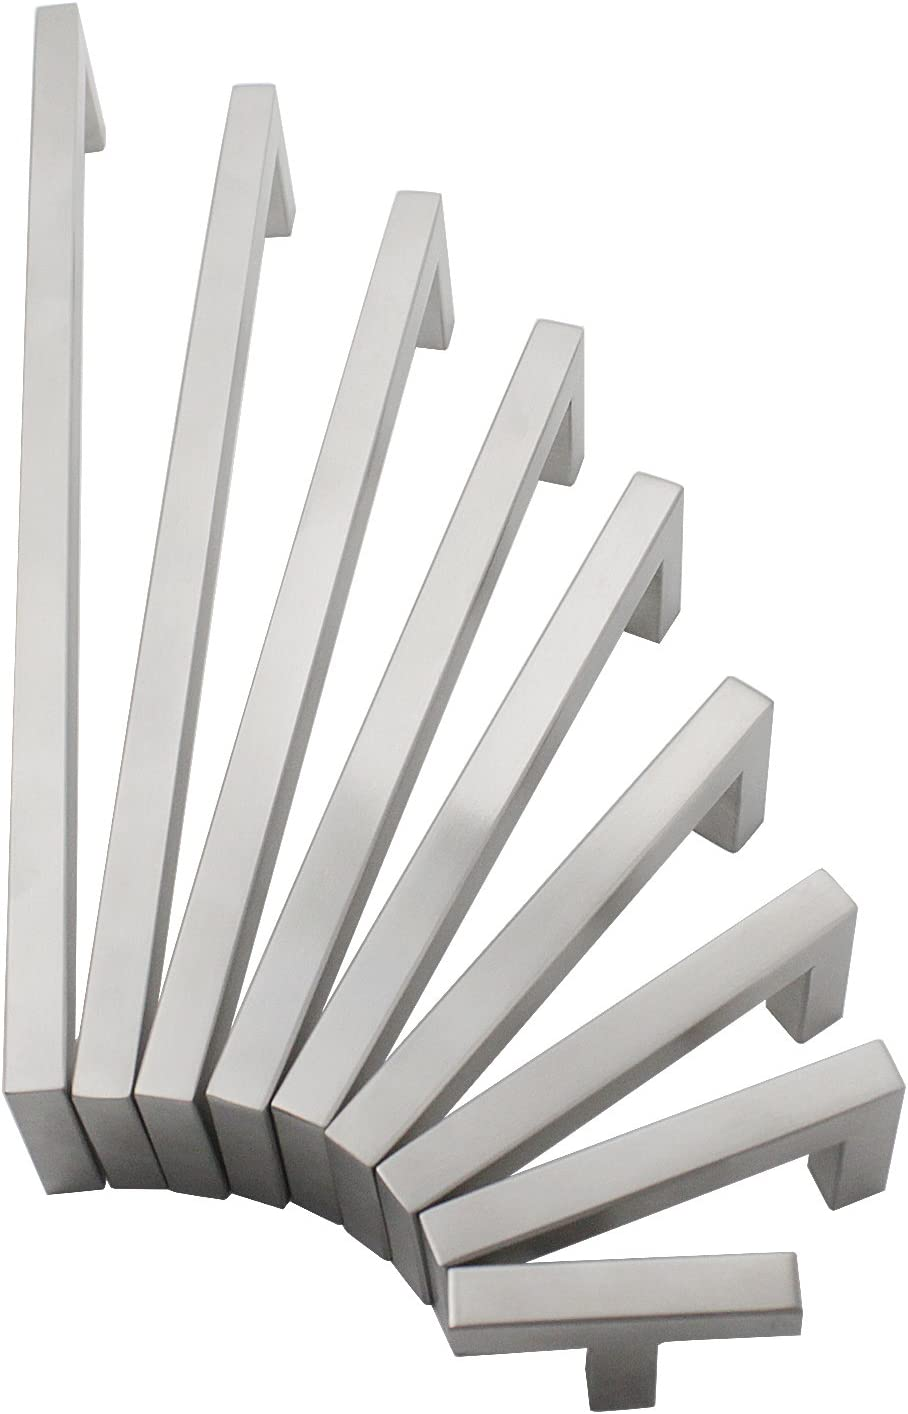 Gobrico Square Kitchen Cabinetry Pulls and Handles 3 Hole to Hole Centers,3.39 Length,10mm Width,10Pack,Satin Nickel Finished